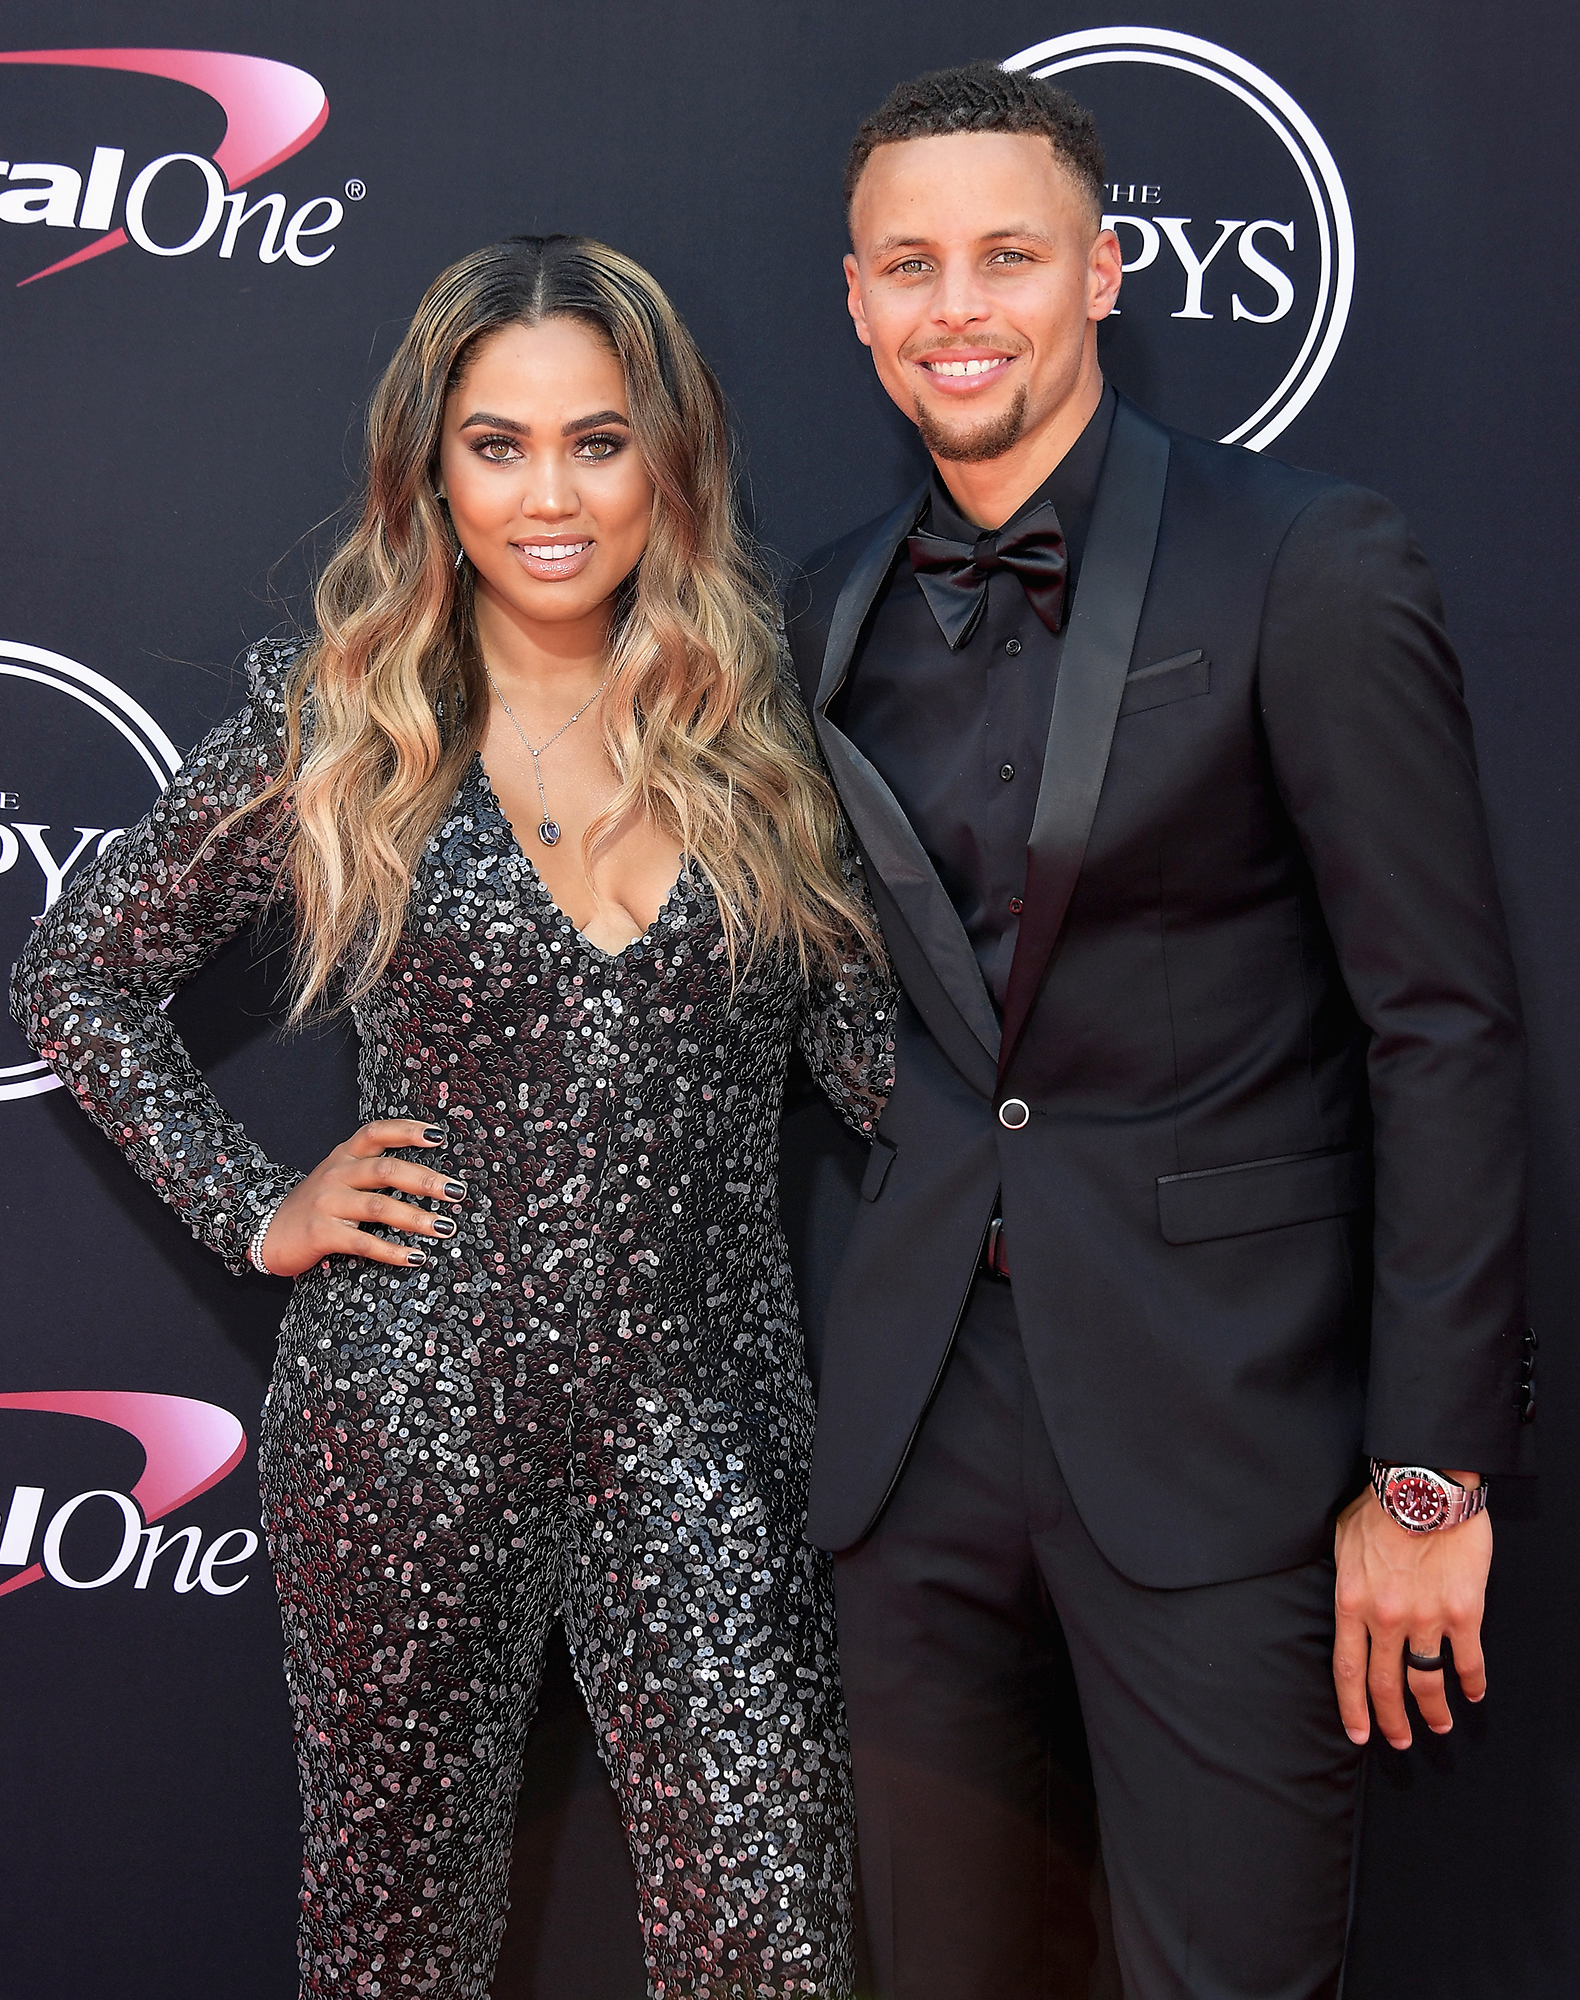 b19016babe95 Stephen Curry Supports Wife Ayesha Curry Amid Backlash